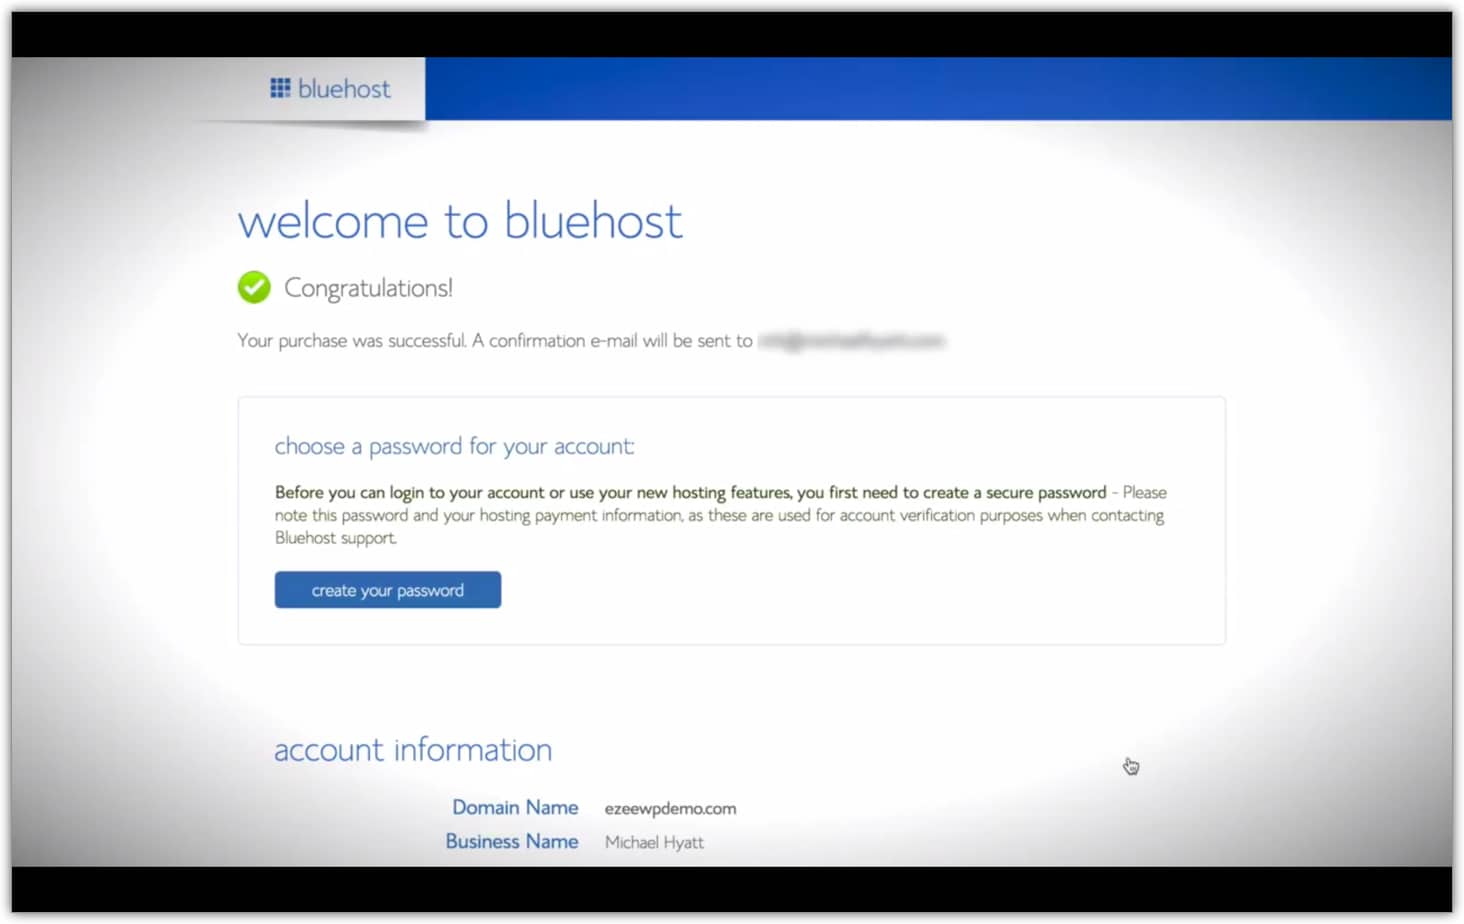 Bluehost Figure 2